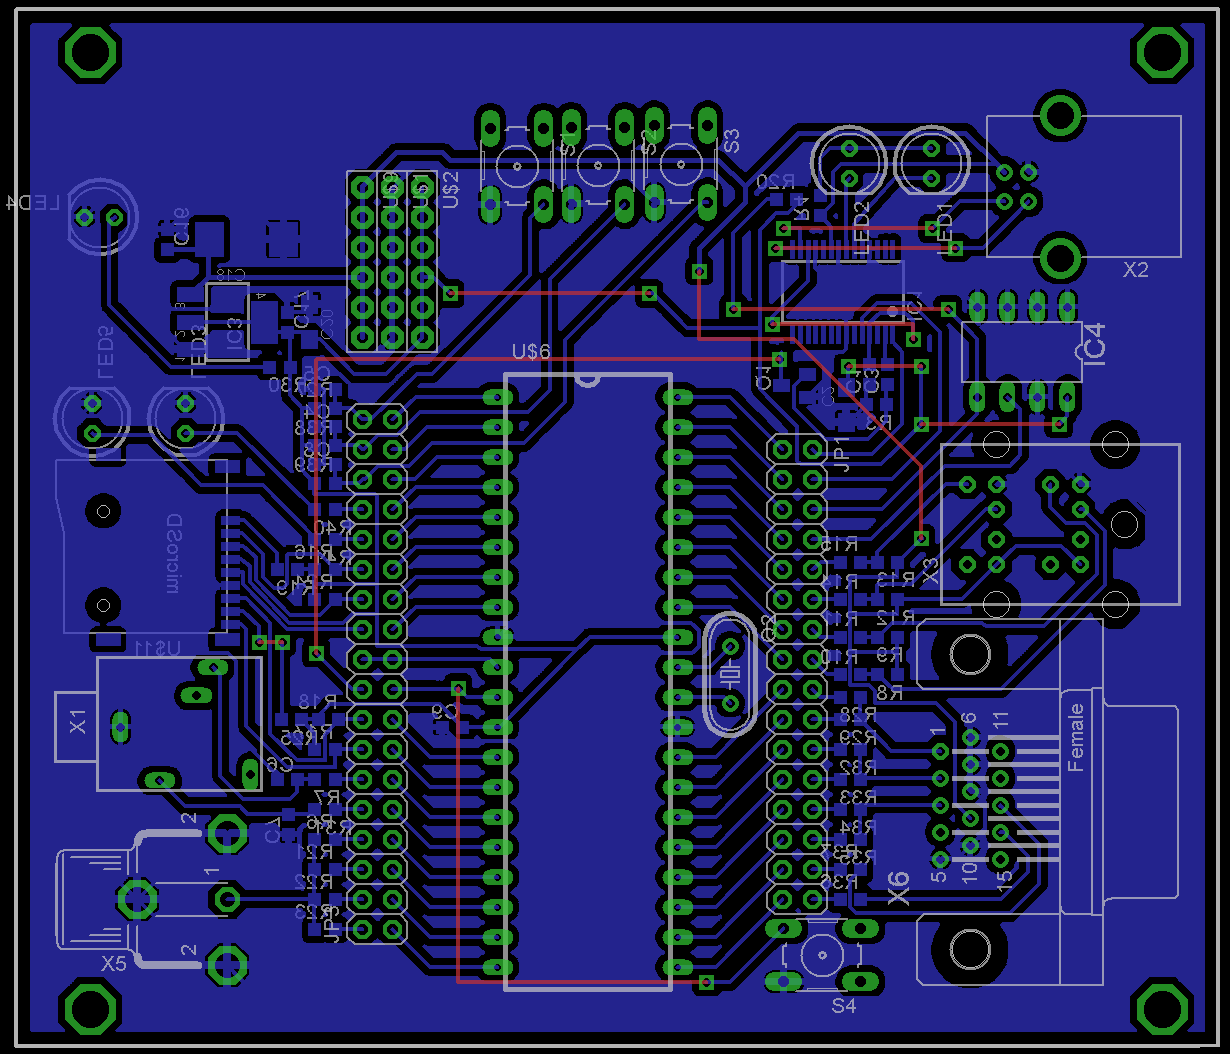 Board Layout with Parts